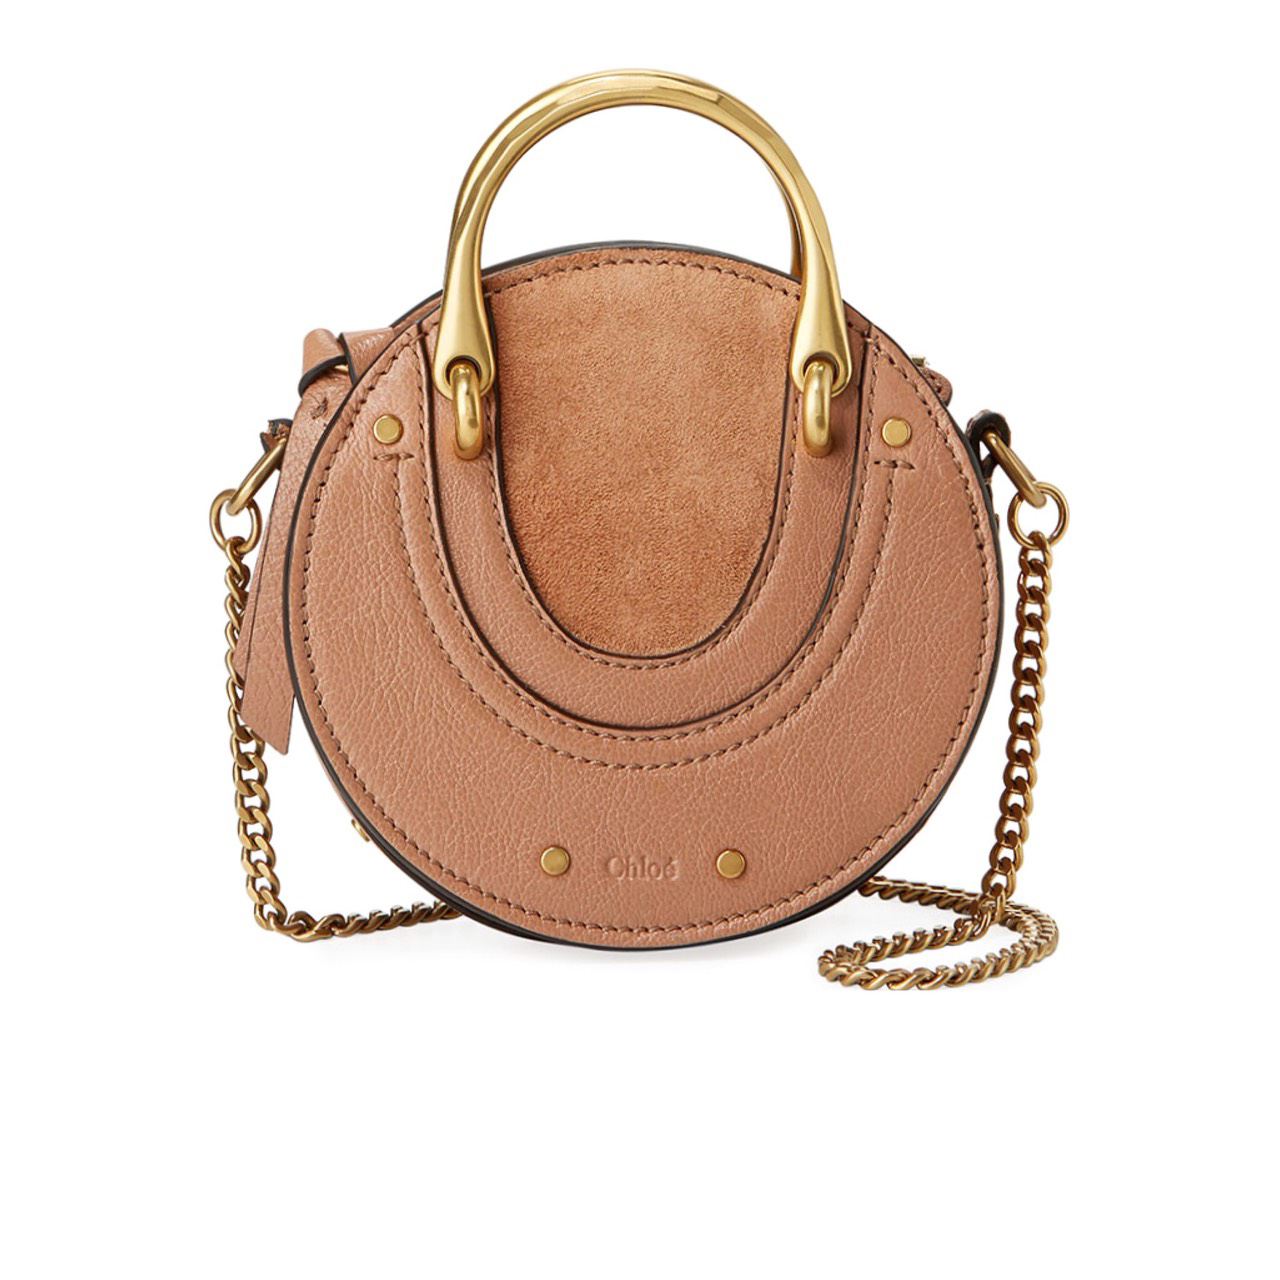 New Chloe Pixie Minibag in Nougat Leather GHW